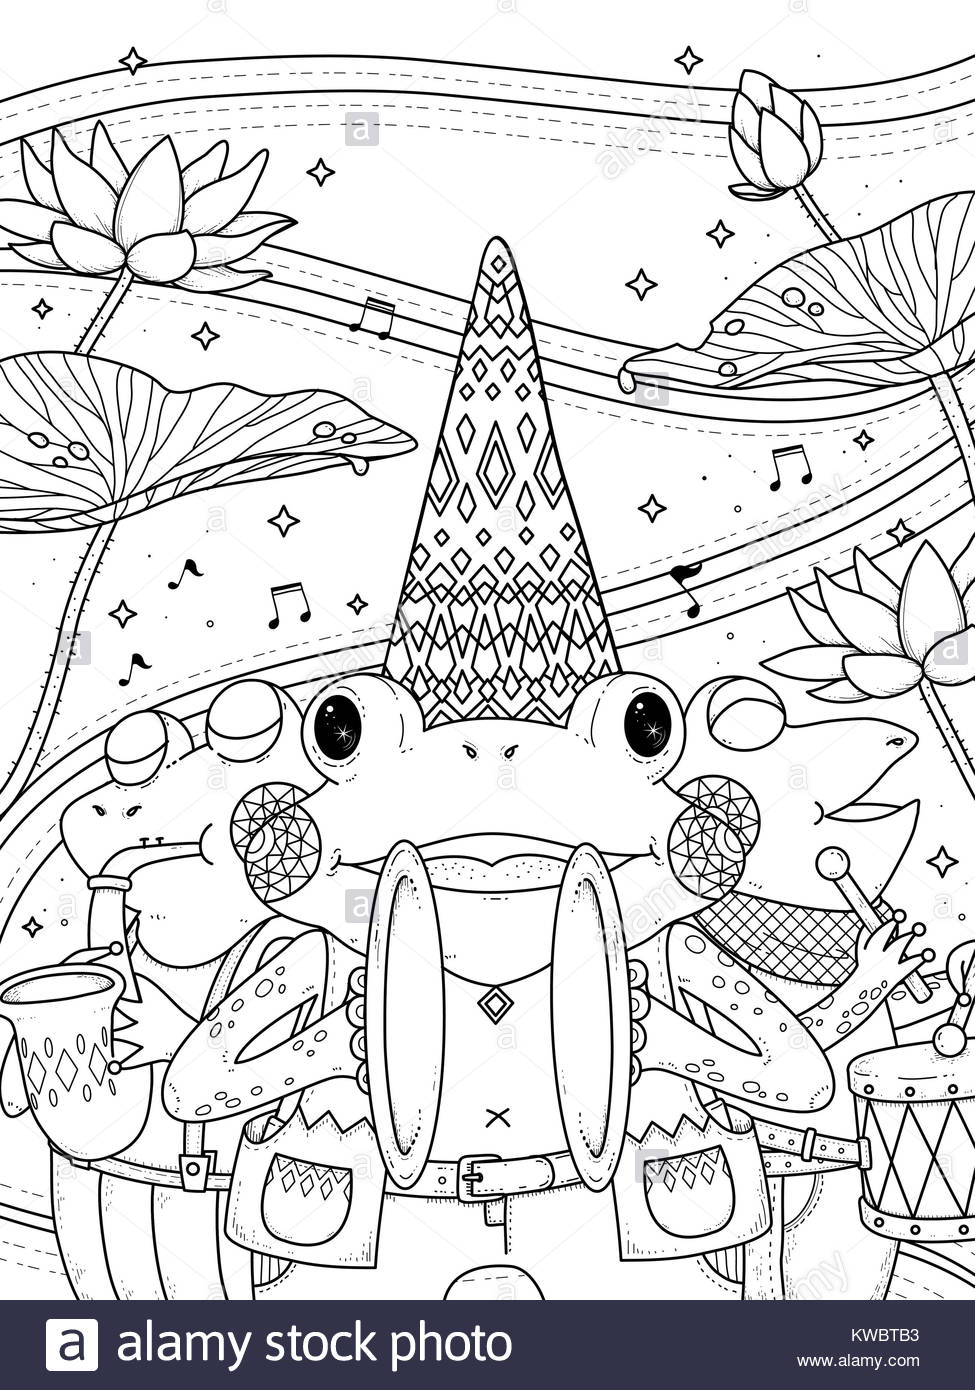 Cartoon Music Instruments Coloring Page Stockfotos & Cartoon Music ...